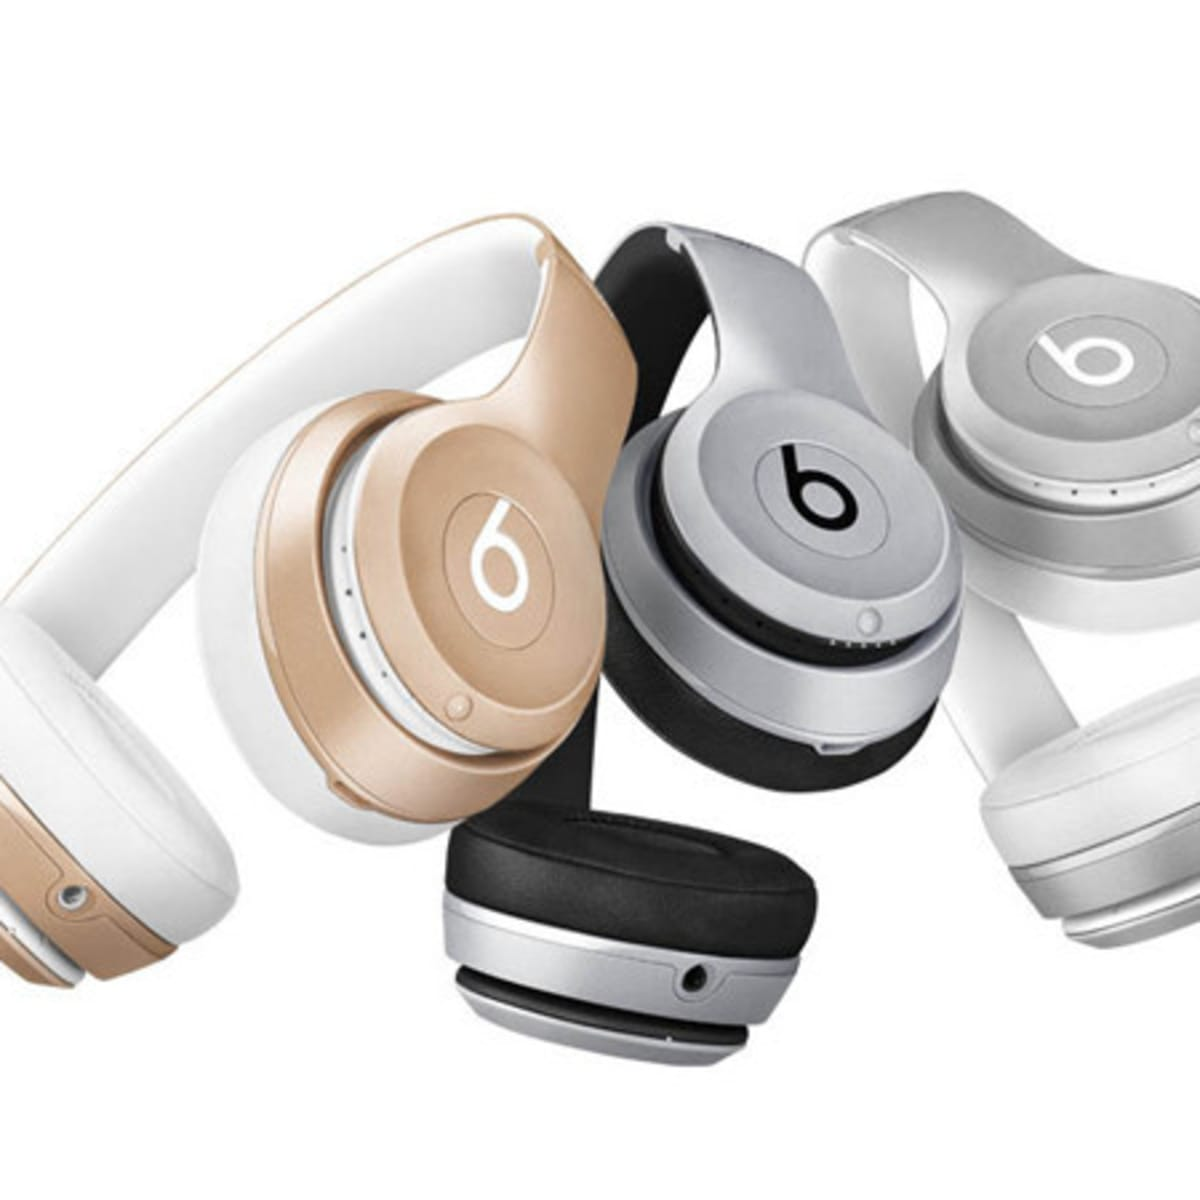 Beats By Dr Dre Presents Solo2 Wireless Heaphones In New Metallic Colors Freshness Mag